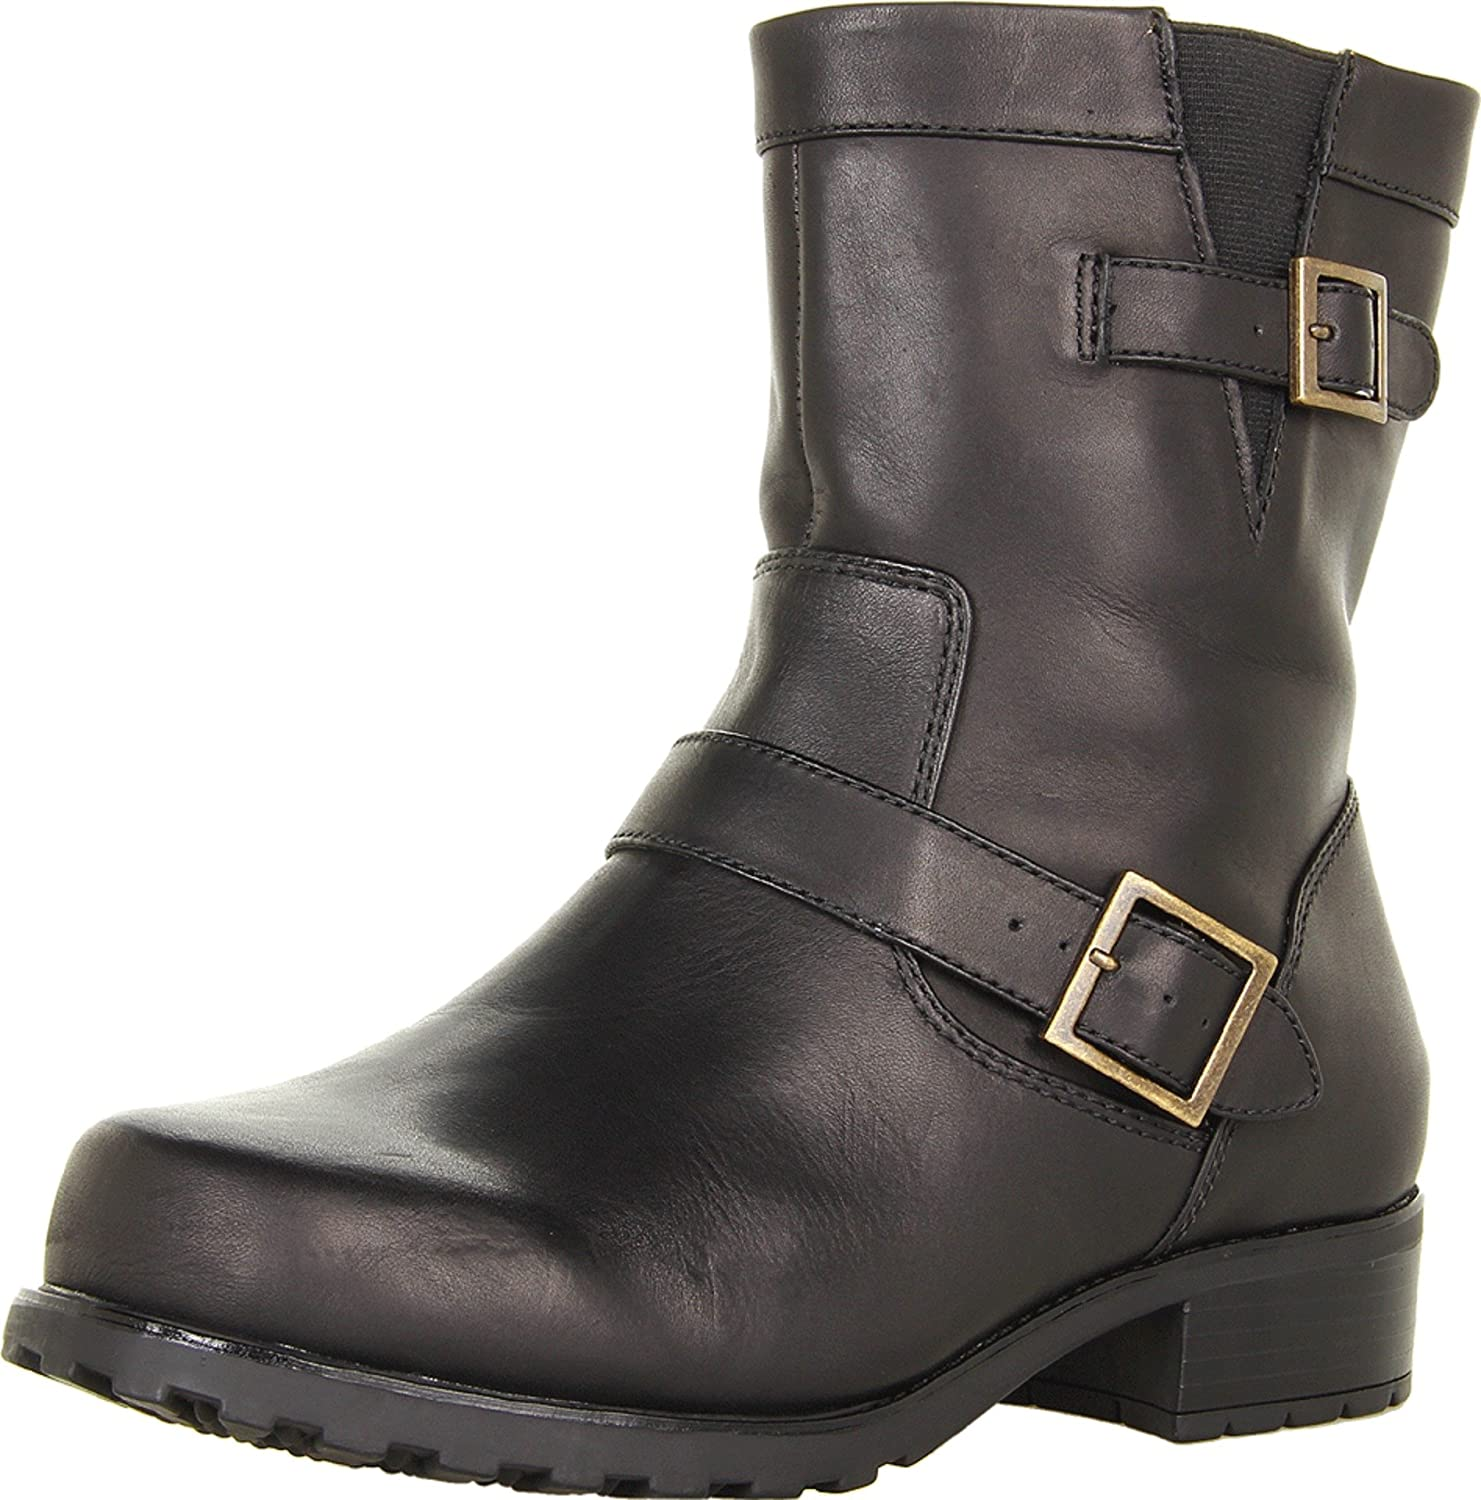 SoftWalk Women's Bellville Boot B0071BFG96 8 W US|Black